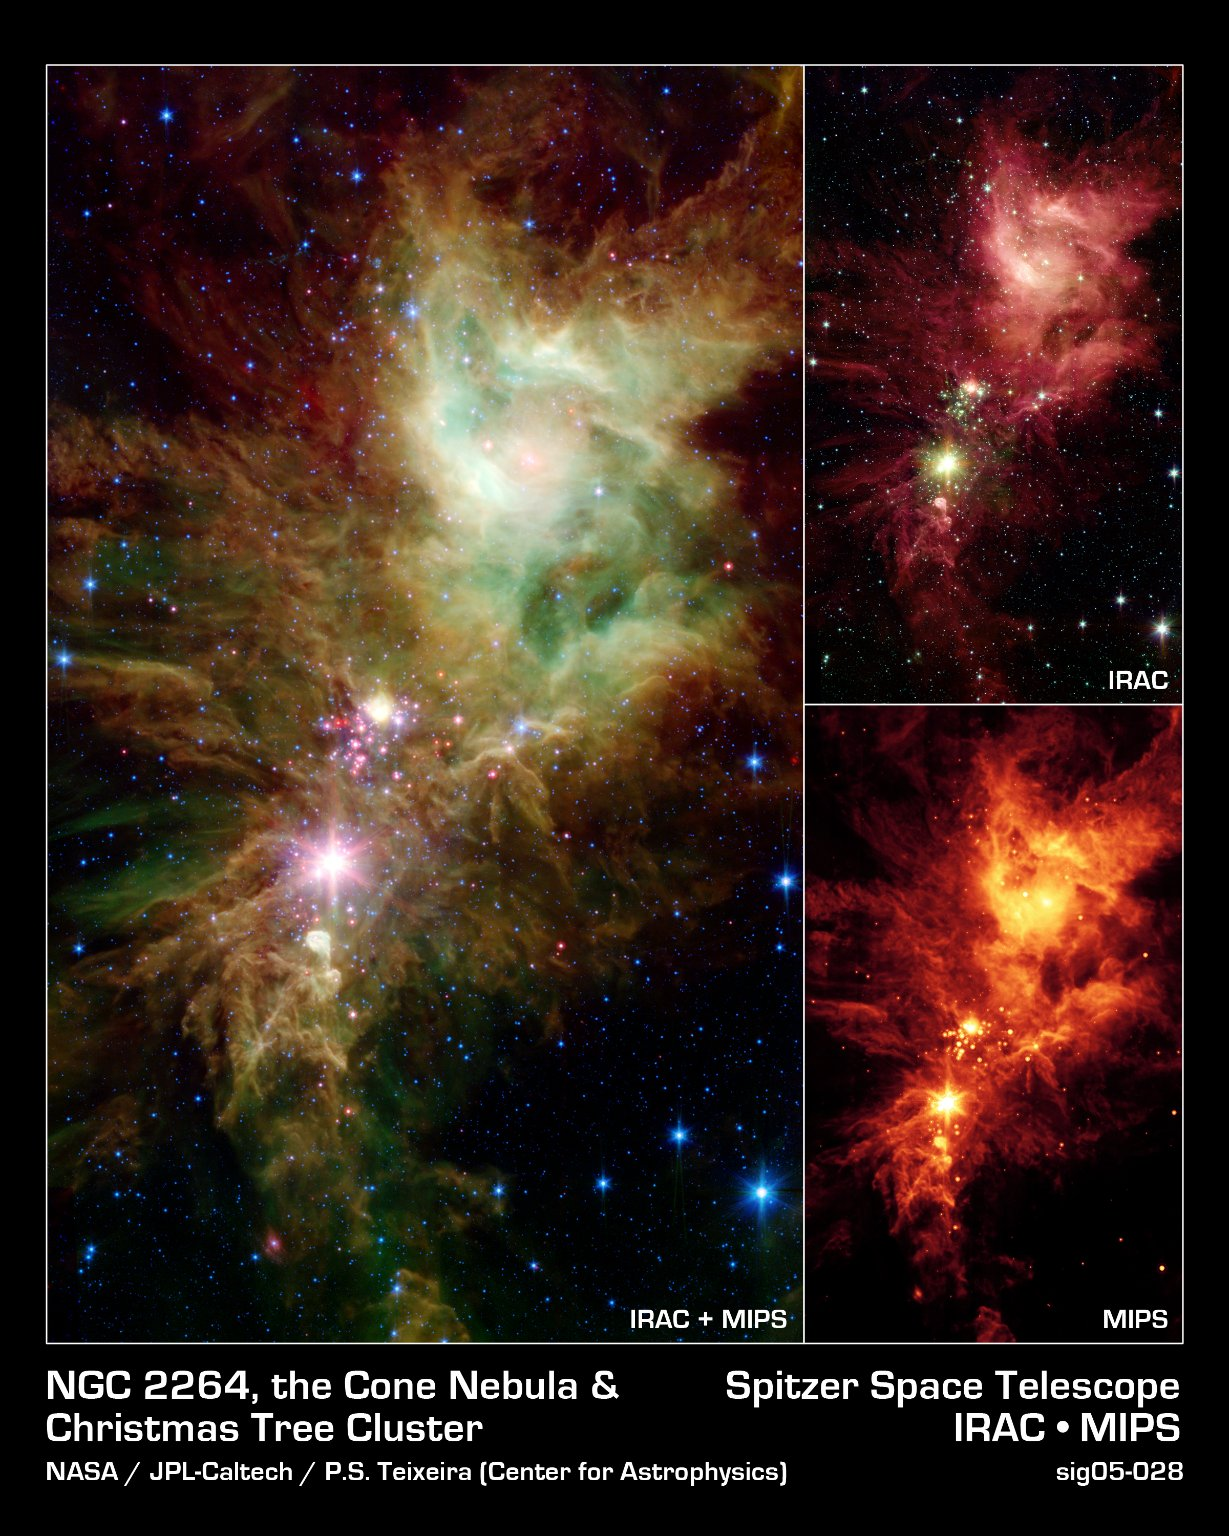 The Snowflake Cluster versus the Cone Nebula